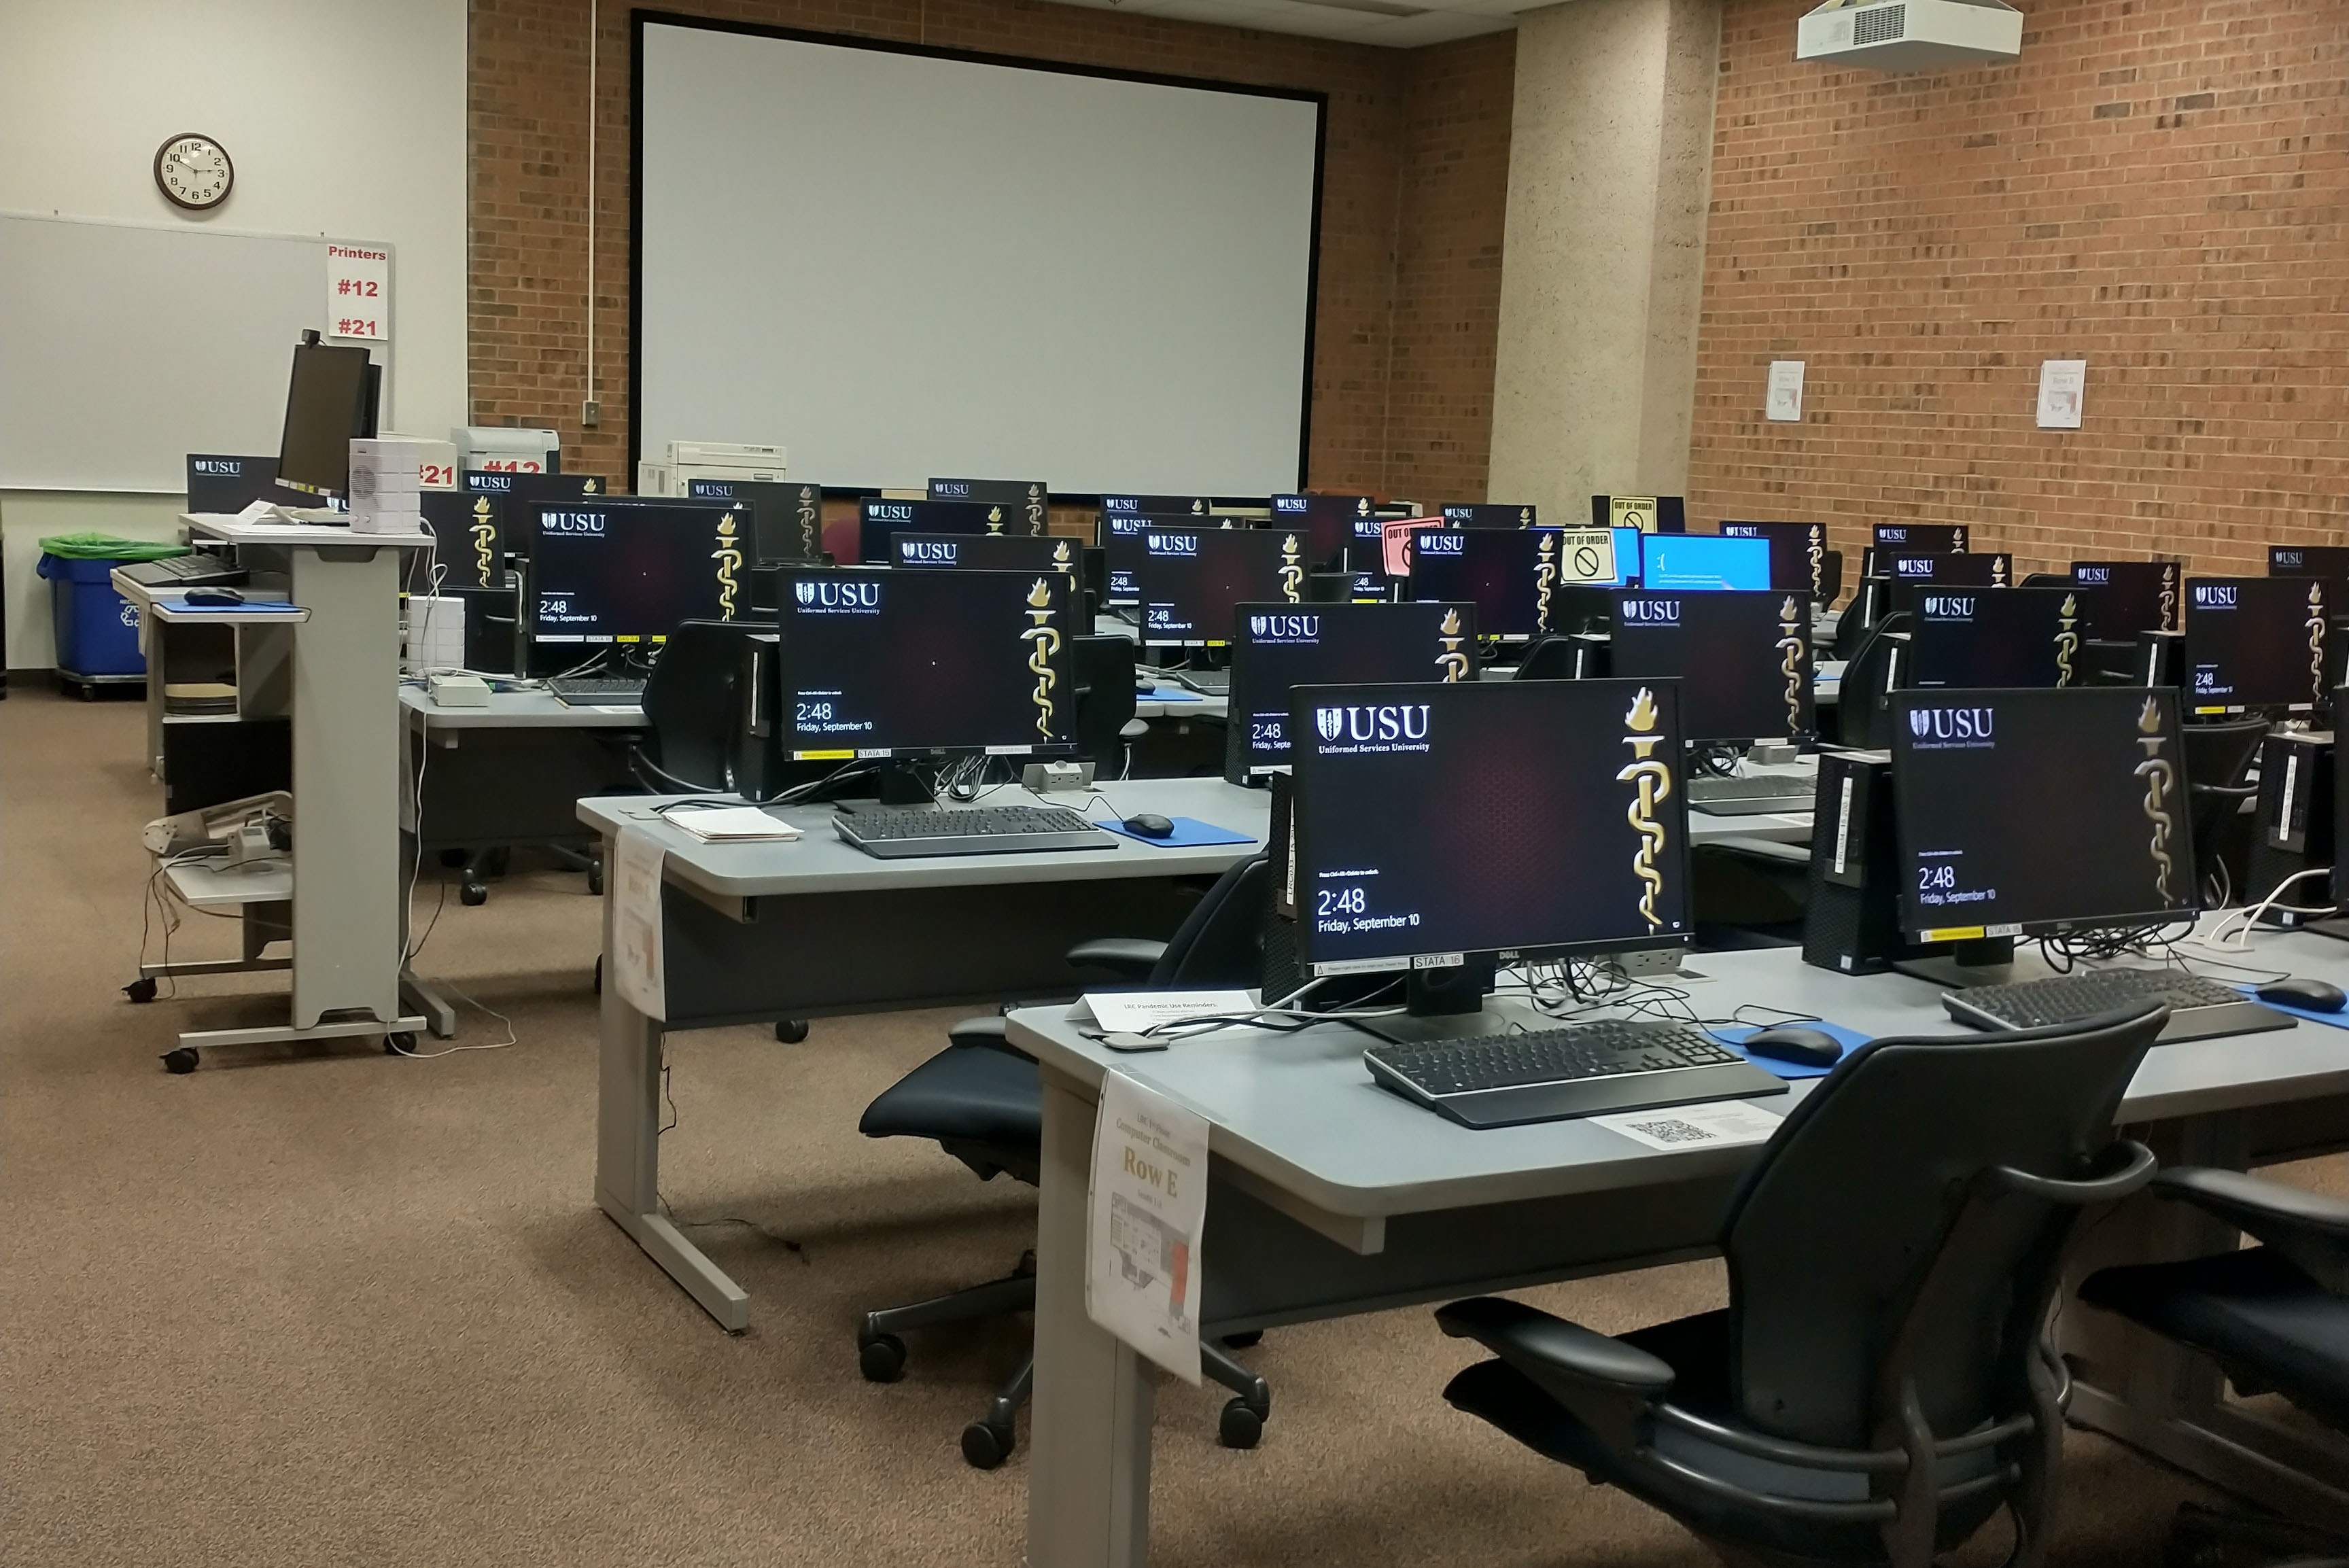 A view from the back of the LRC Computer Classroom, showing rows of computers.